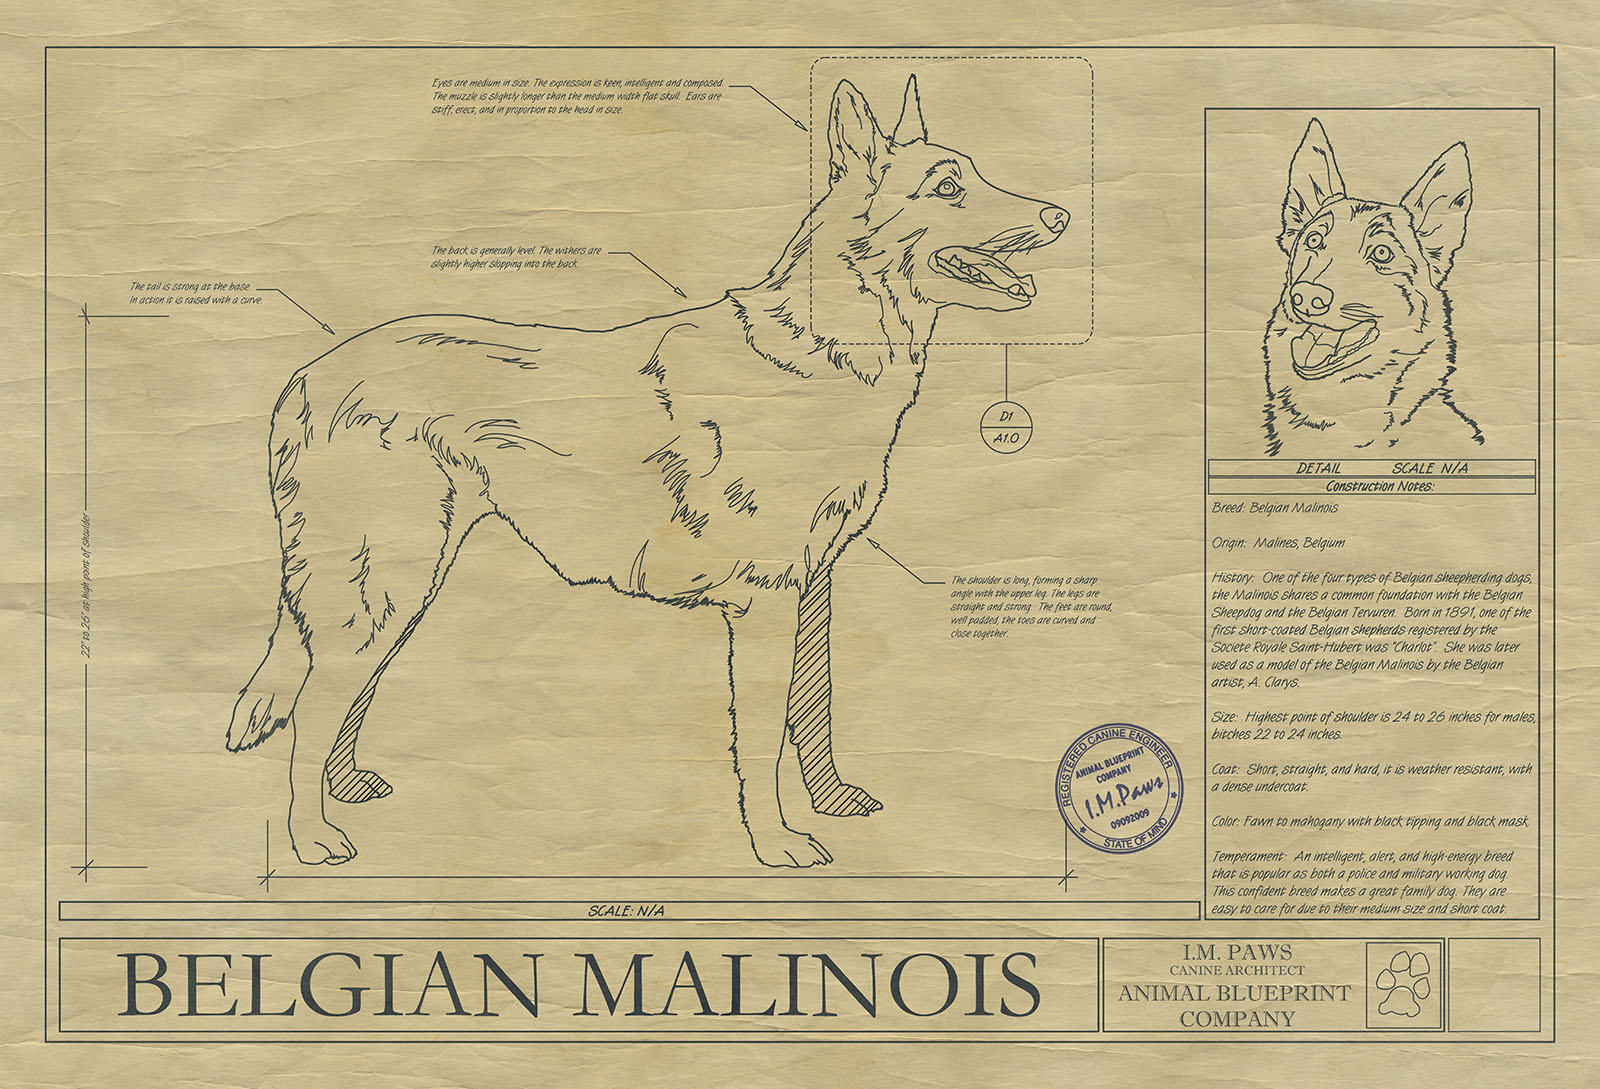 Belgian malinois drawing animal blueprint company click malvernweather Gallery